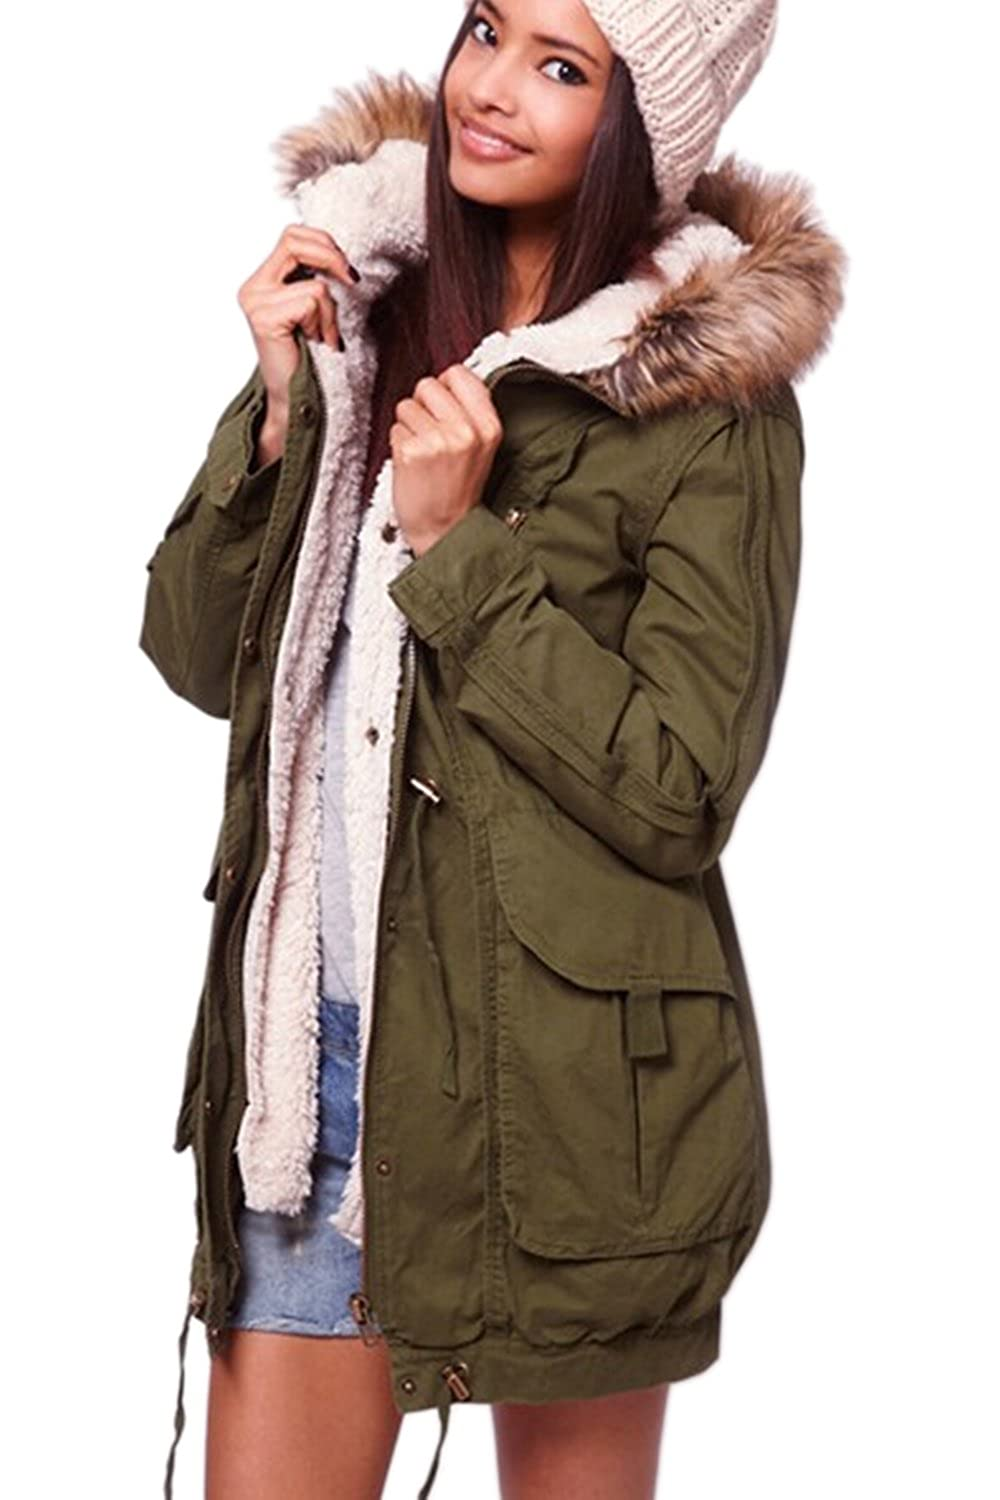 YACUN Women's Casual Warm Parkas with Faux Fur Hood